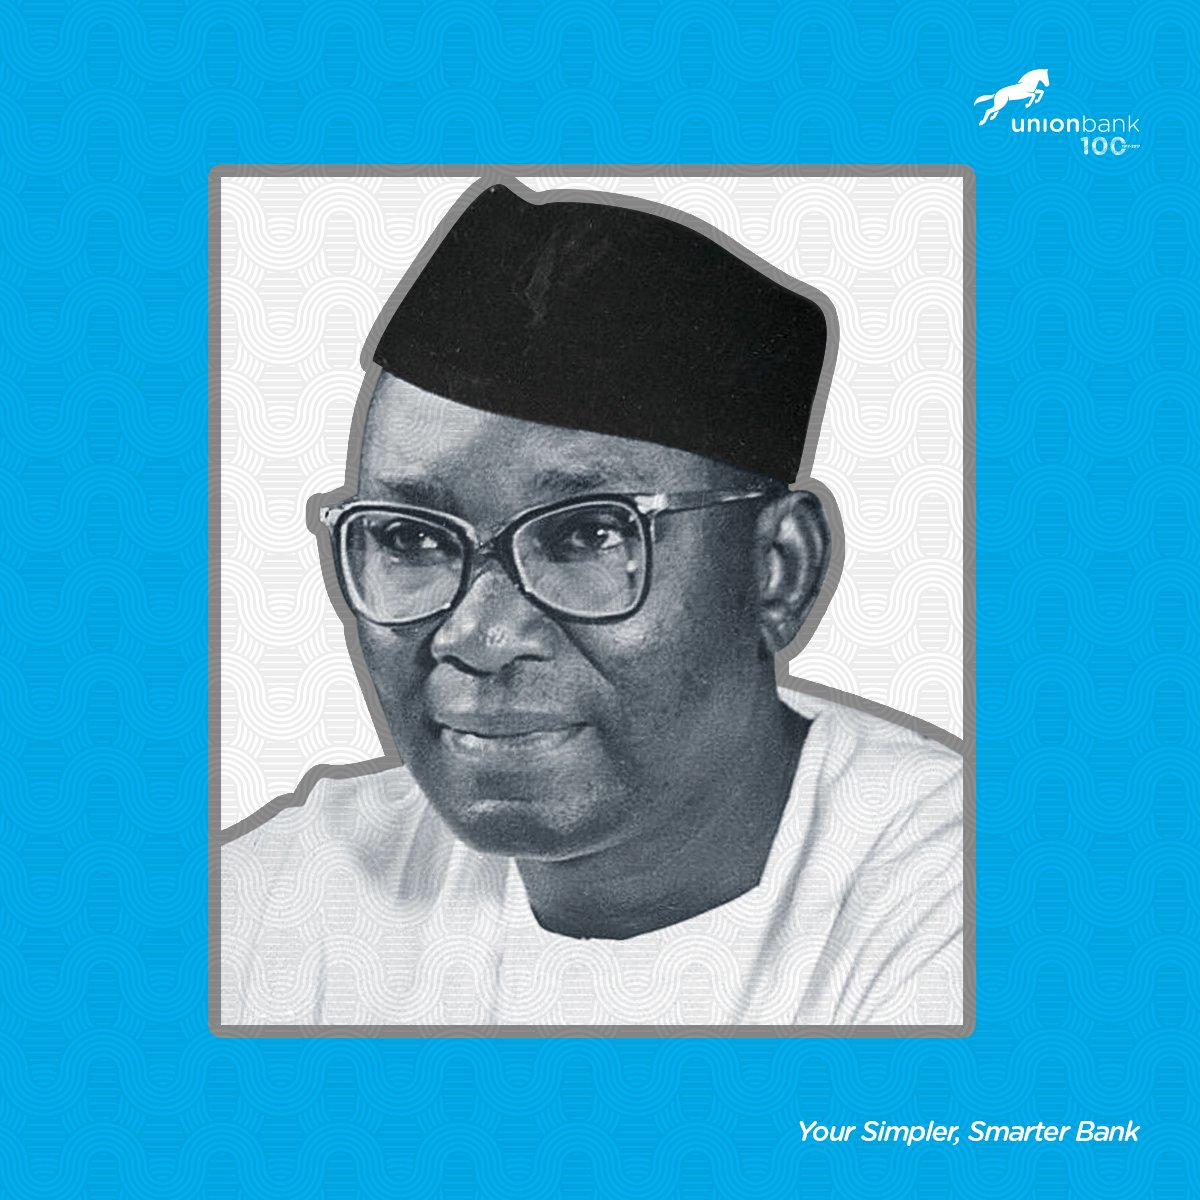 Dr. Benjamin Nnamdi Azikiwe, was a Nigerian nationalist who served as the first President of Nigeria.   He is often referred to as the &quot;father of Nigerian Nationalism&quot;, and his photo can be found on the N500 note.   RT if you guessed it right... #TuesdayTrivia #UnionBank<br>http://pic.twitter.com/Cnz0daEbkY